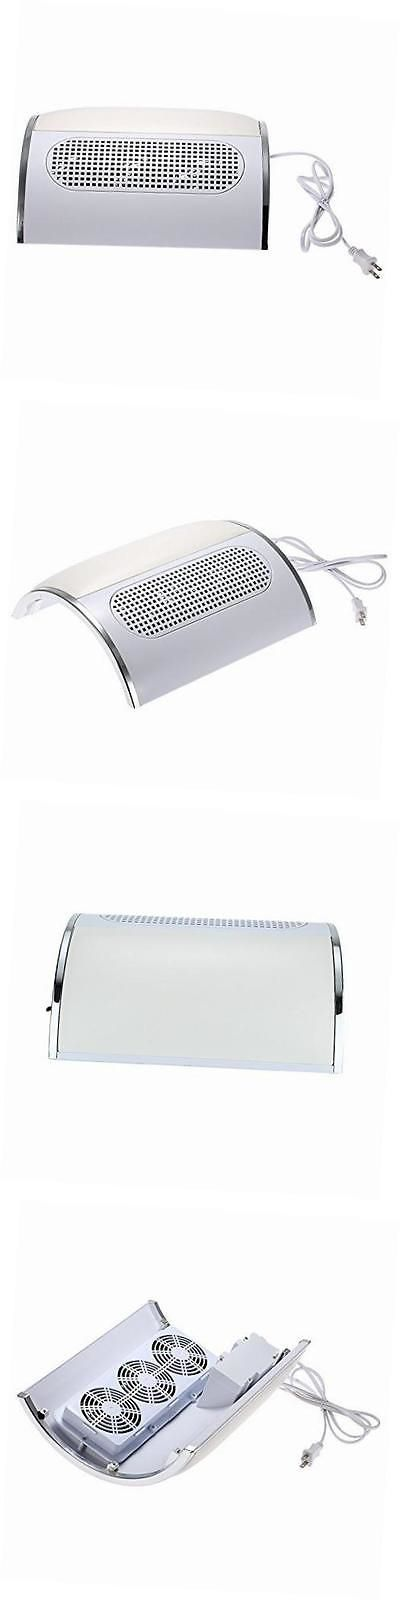 Nail Art Accessories: Pro Nail Dust Collector Fingernail Cleaning Suction Collection Fan Nail Art -> BUY IT NOW ONLY: $74.66 on eBay!